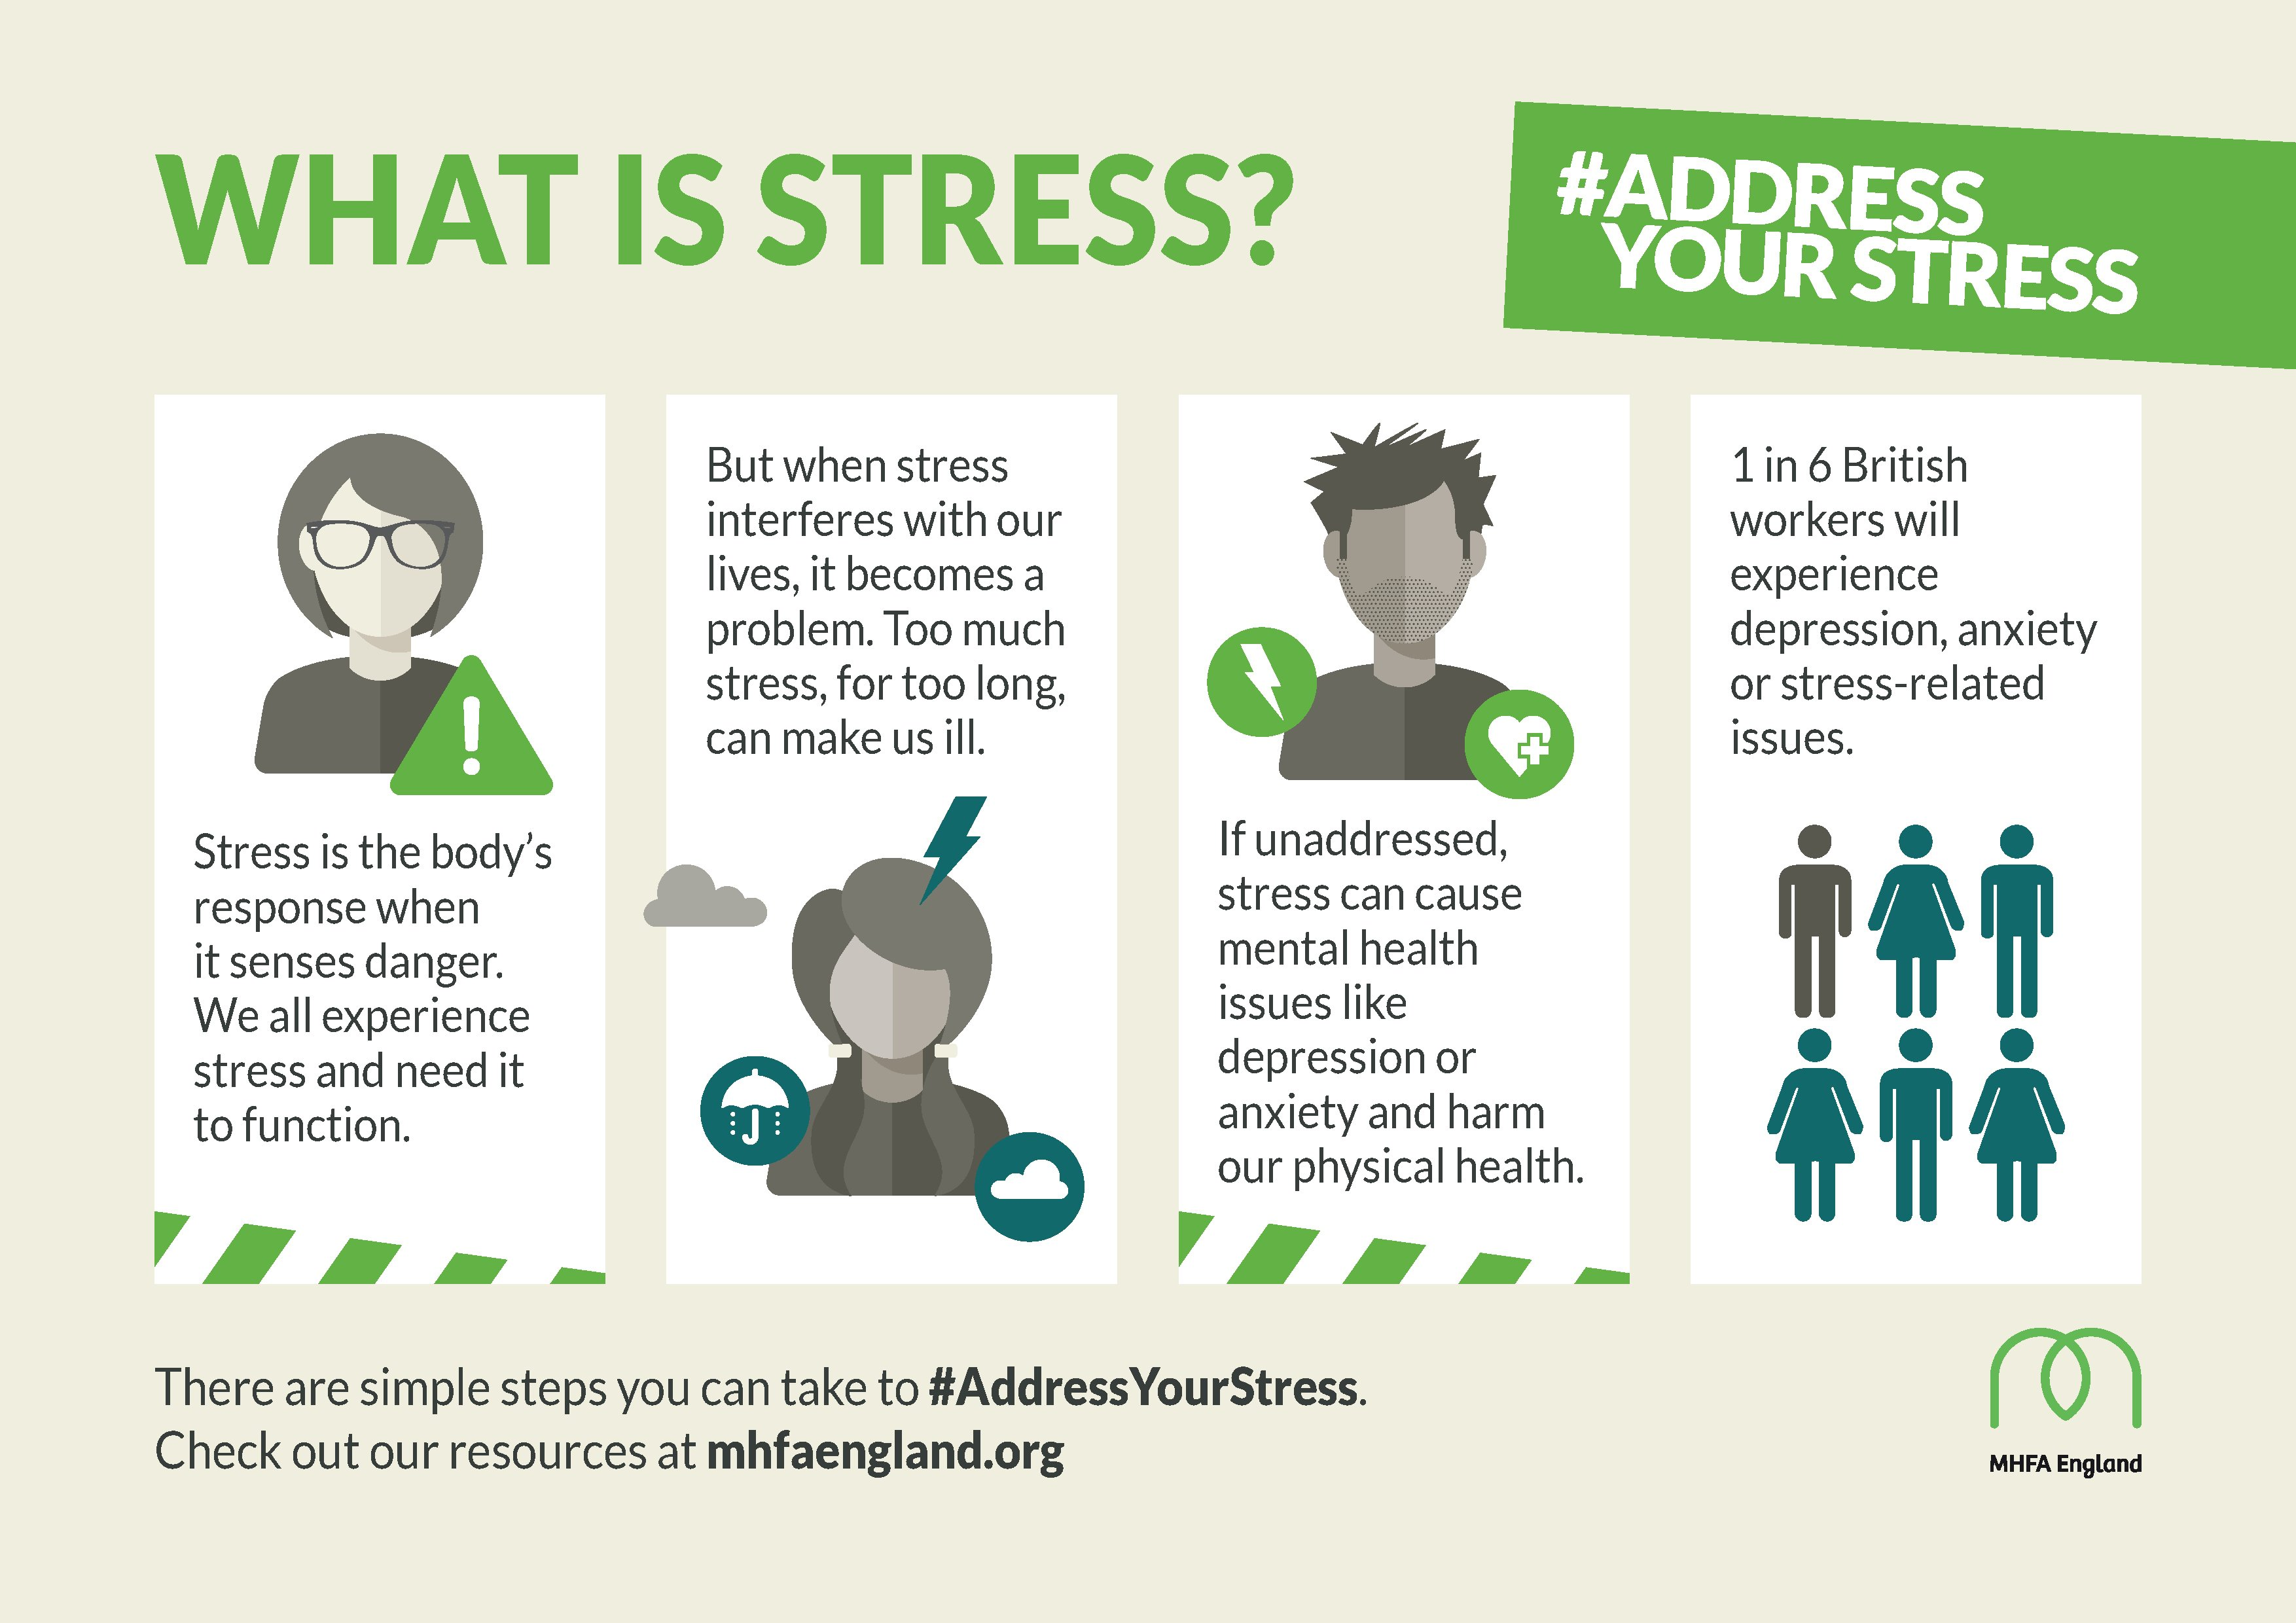 How To Address Your Stress